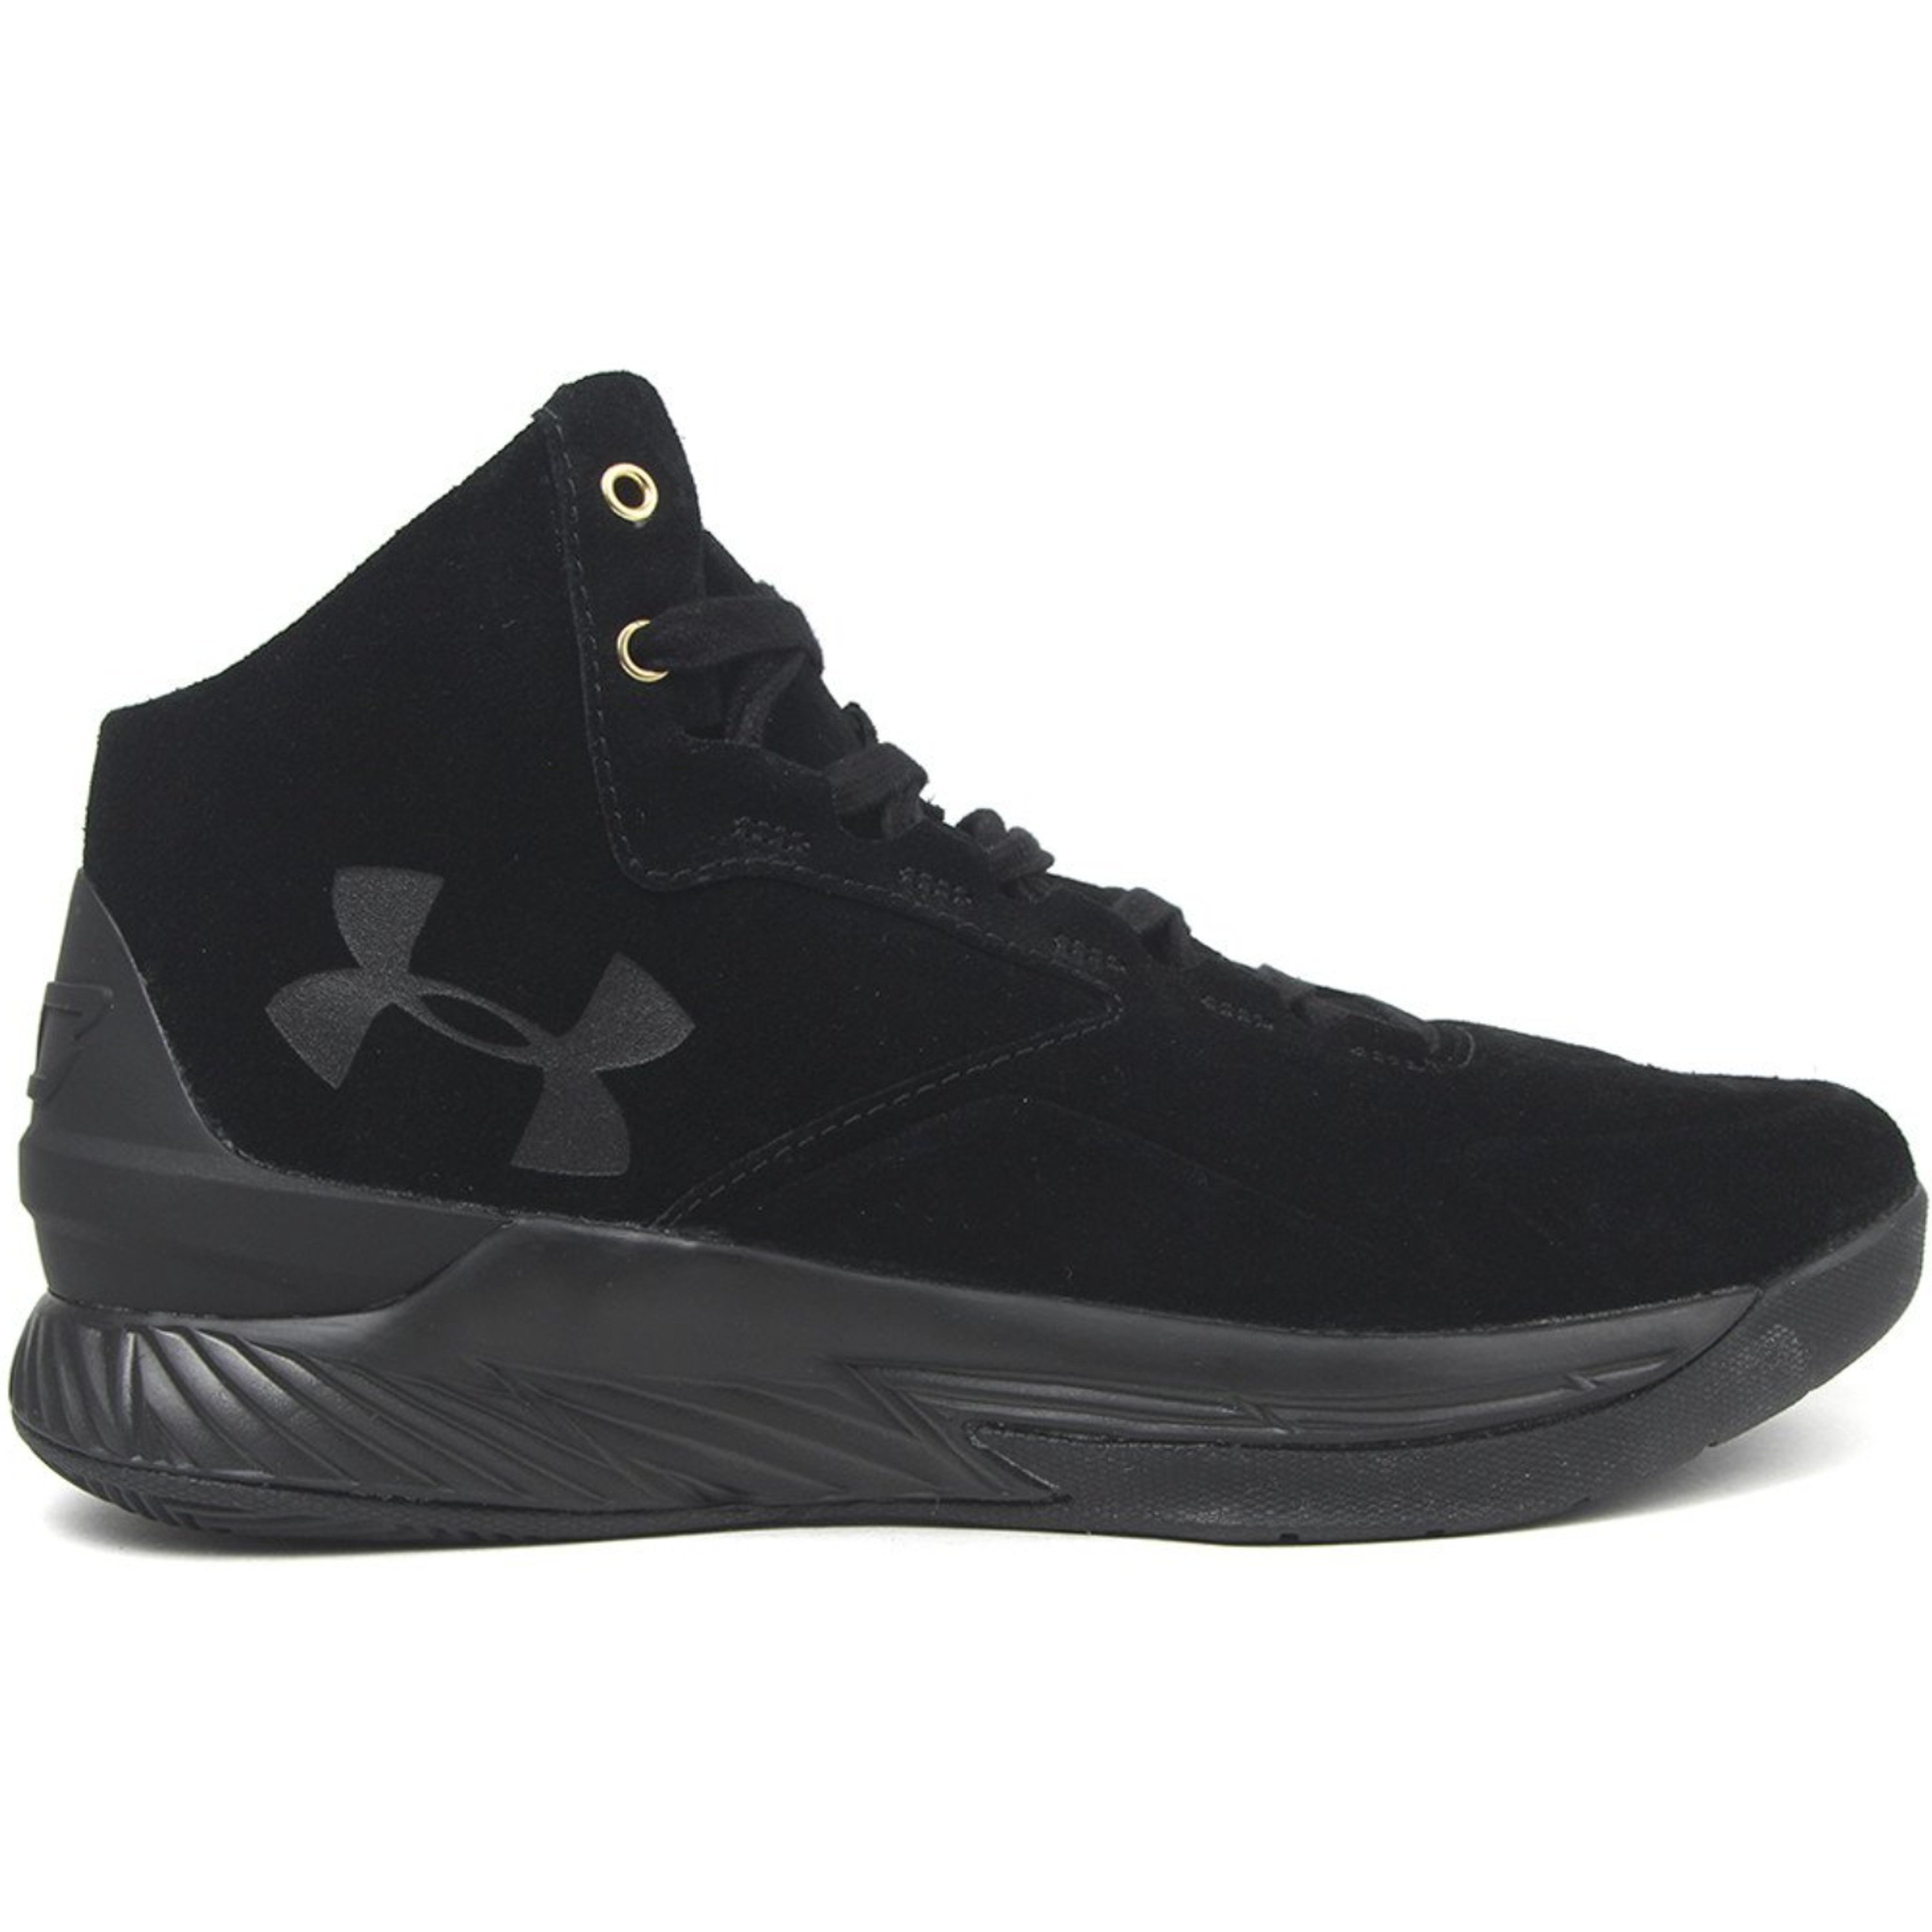 Under Armour UA Curry 1 Lux Black (1298701-001)